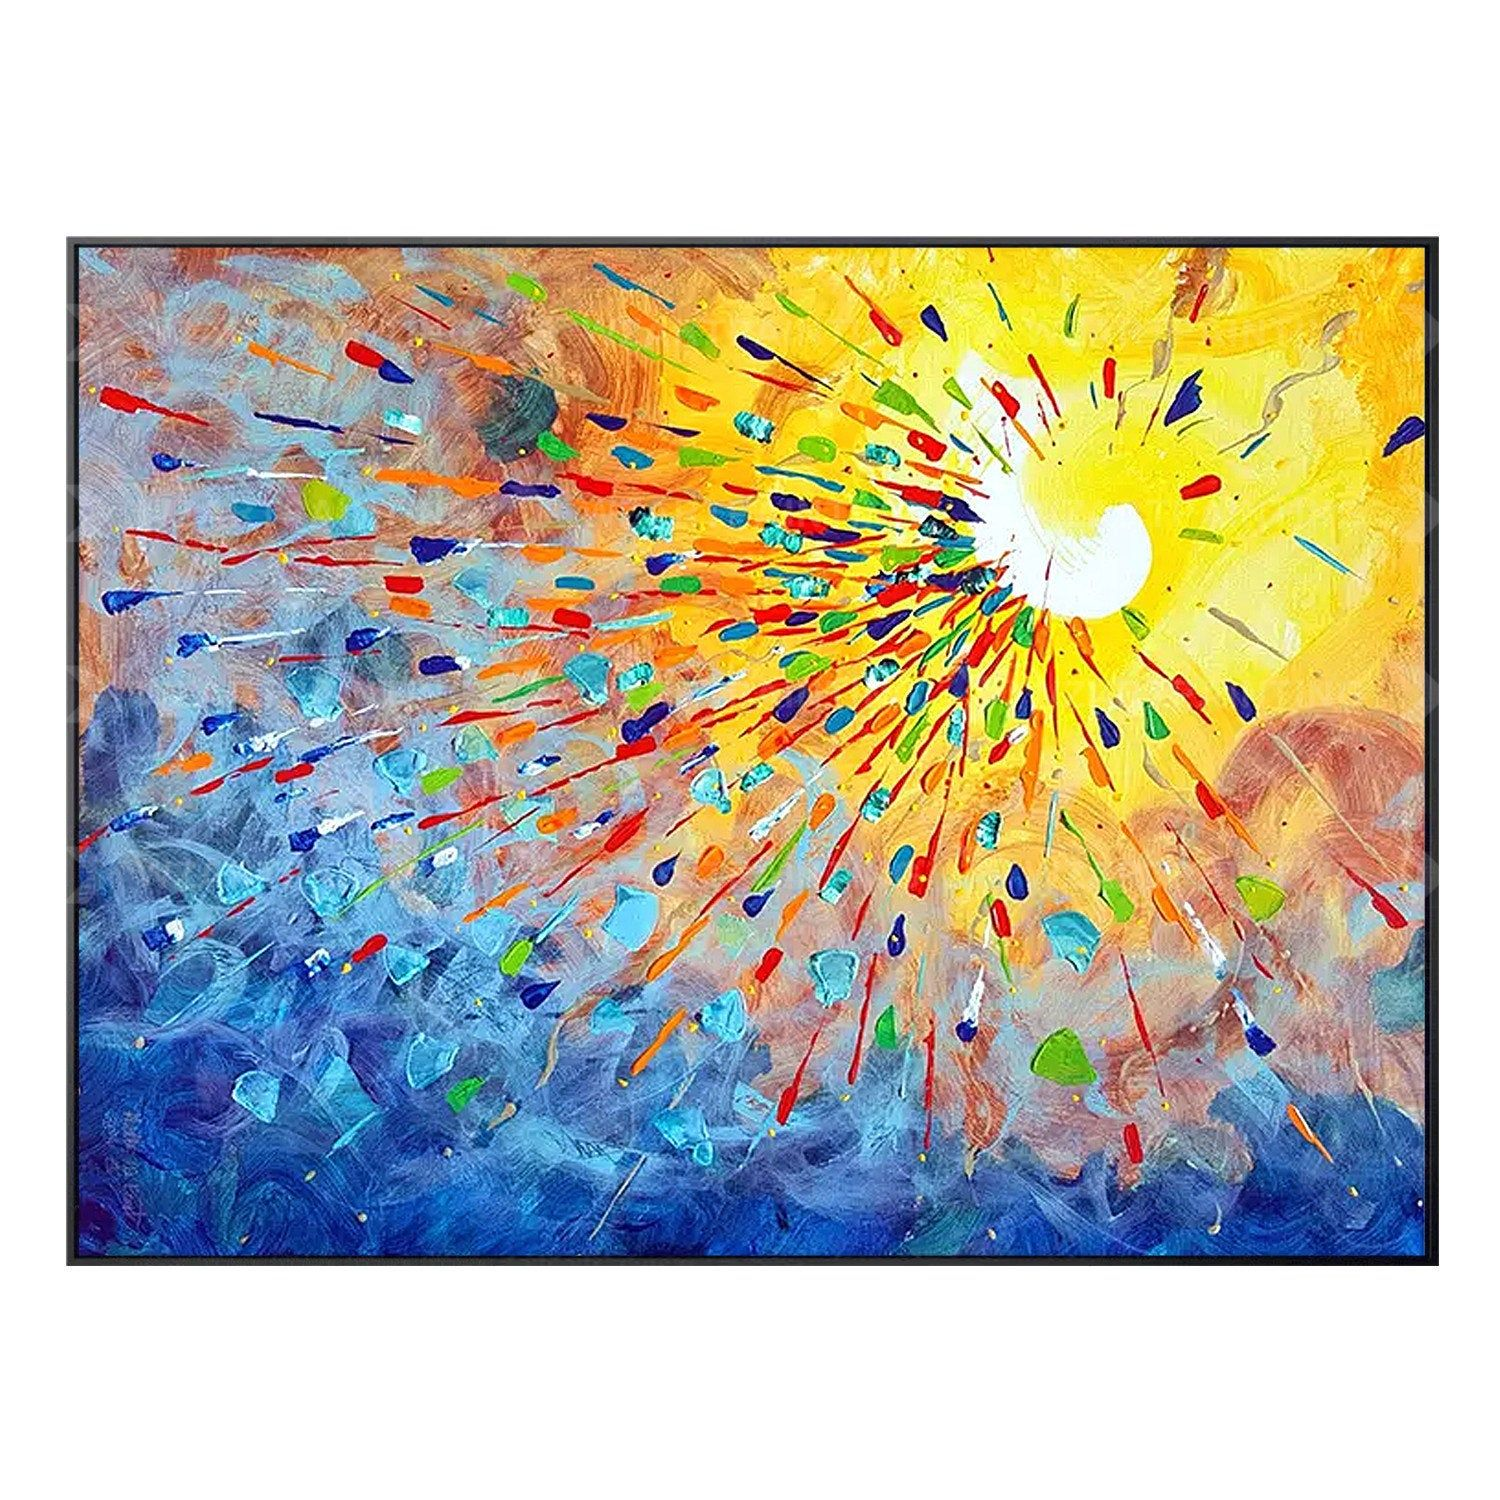 Framed Wall Art Yellow Blue Red Abstract Print On Canvas Painting Wall Art Pictures Art Framed Quadros Caudros Cuadros Abstractos Quadro With Images Wall Art Canvas Painting Wall Art Pictures Canvas